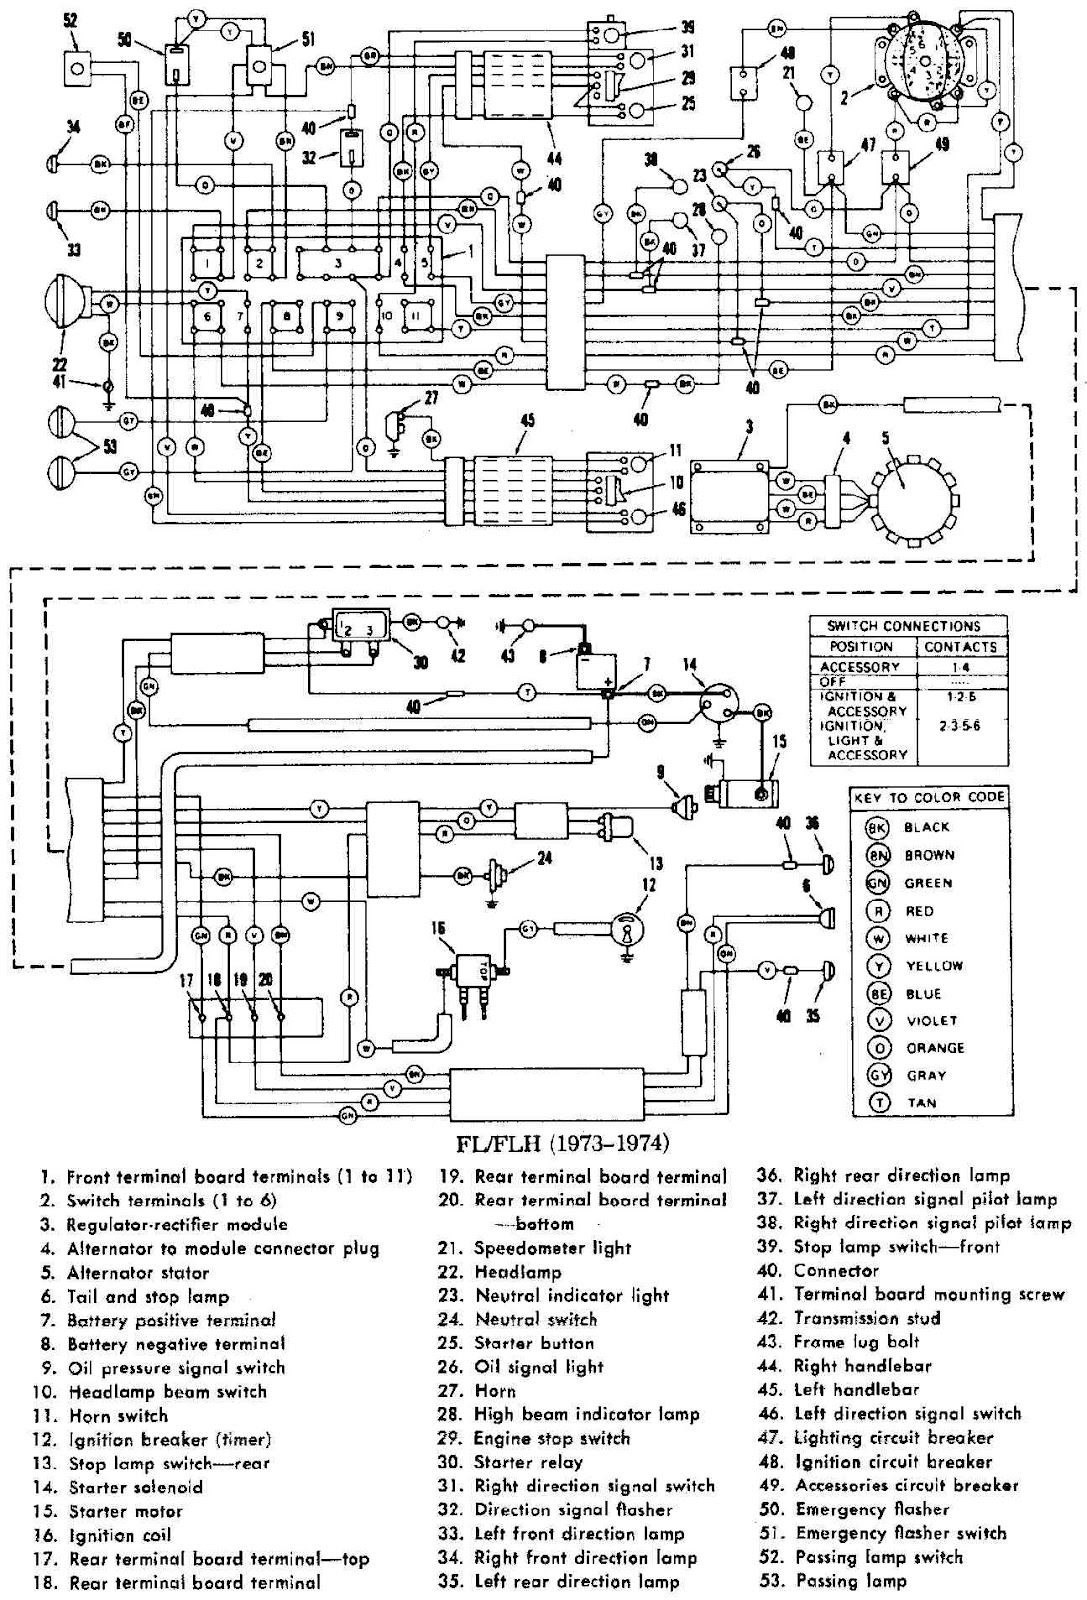 Harley    Davidson    FLFLH 197374    Motorcycle    Electrical    Wiring       Diagram      All about    Wiring       Diagrams